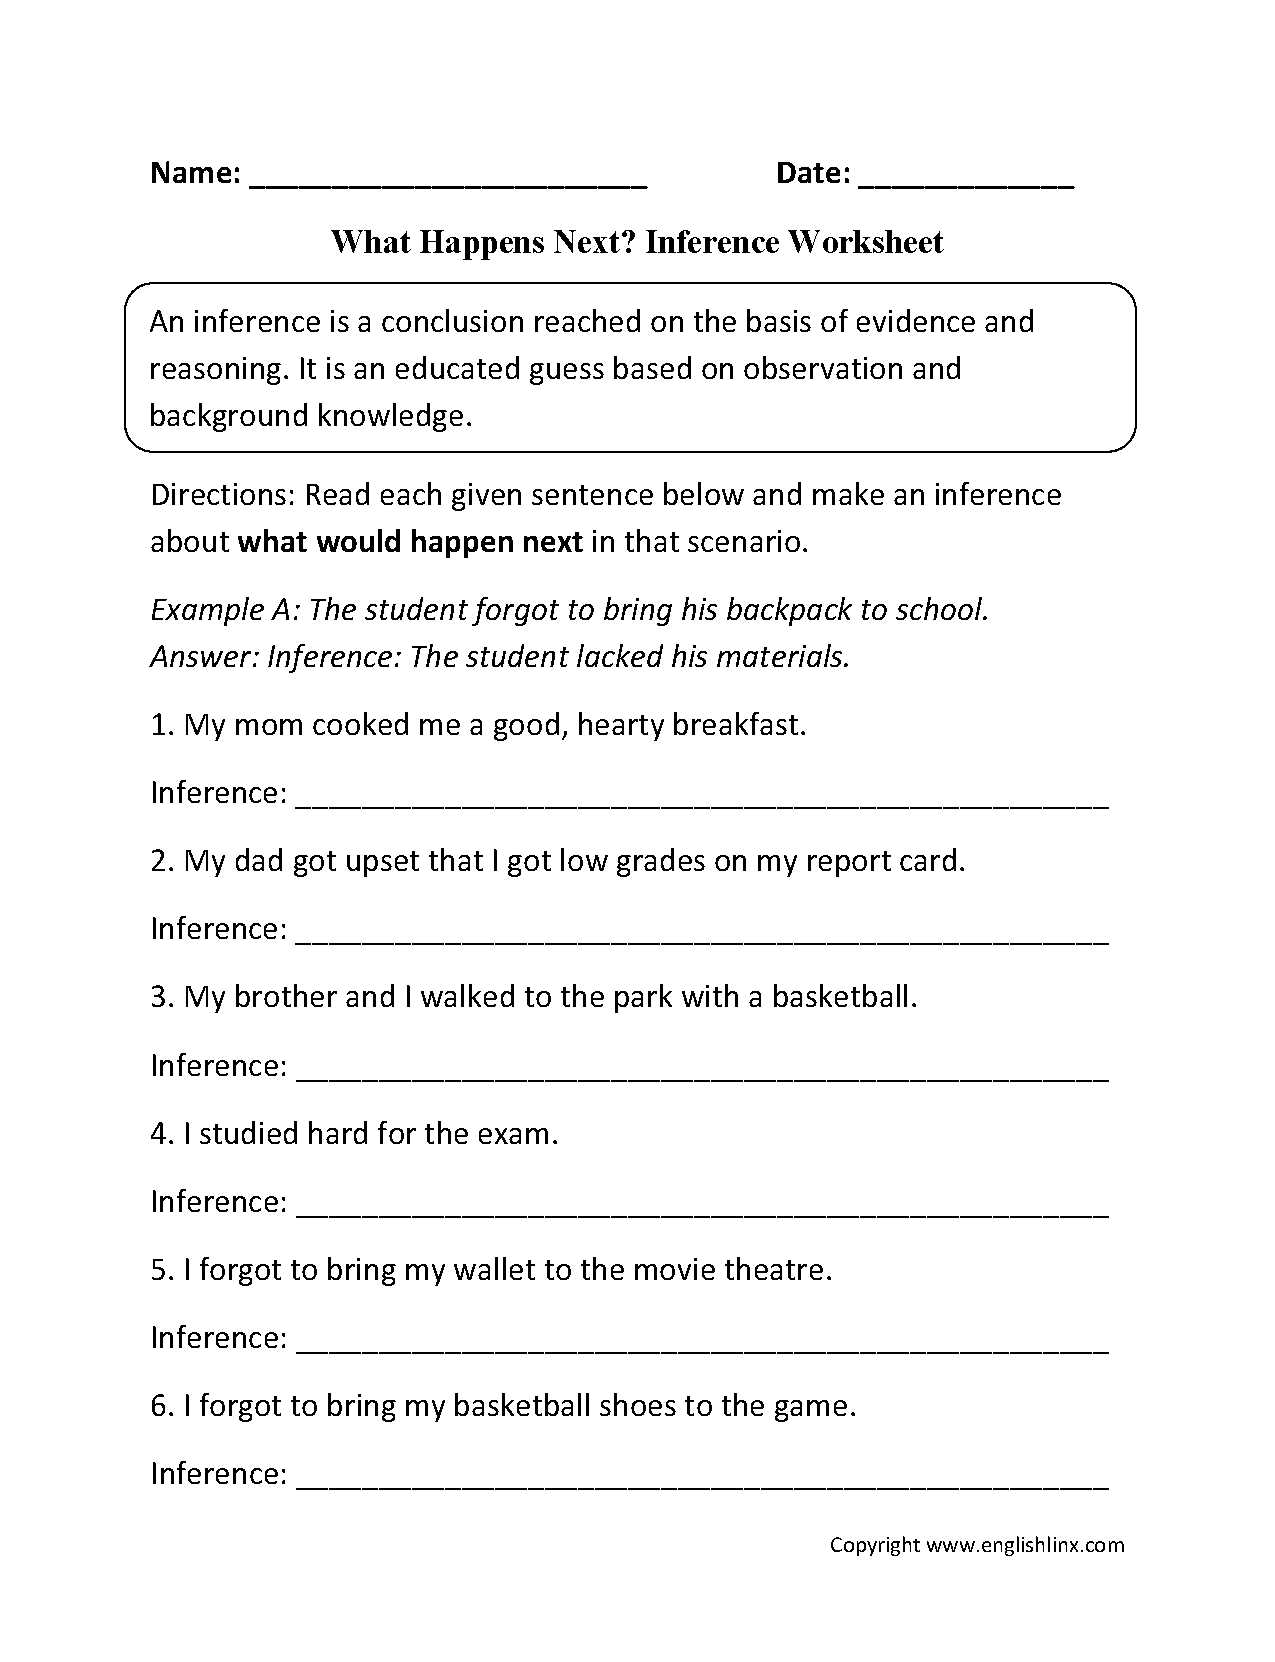 Inferences Worksheet 1 as Well as What Happens Next Inference Worksheets Reading